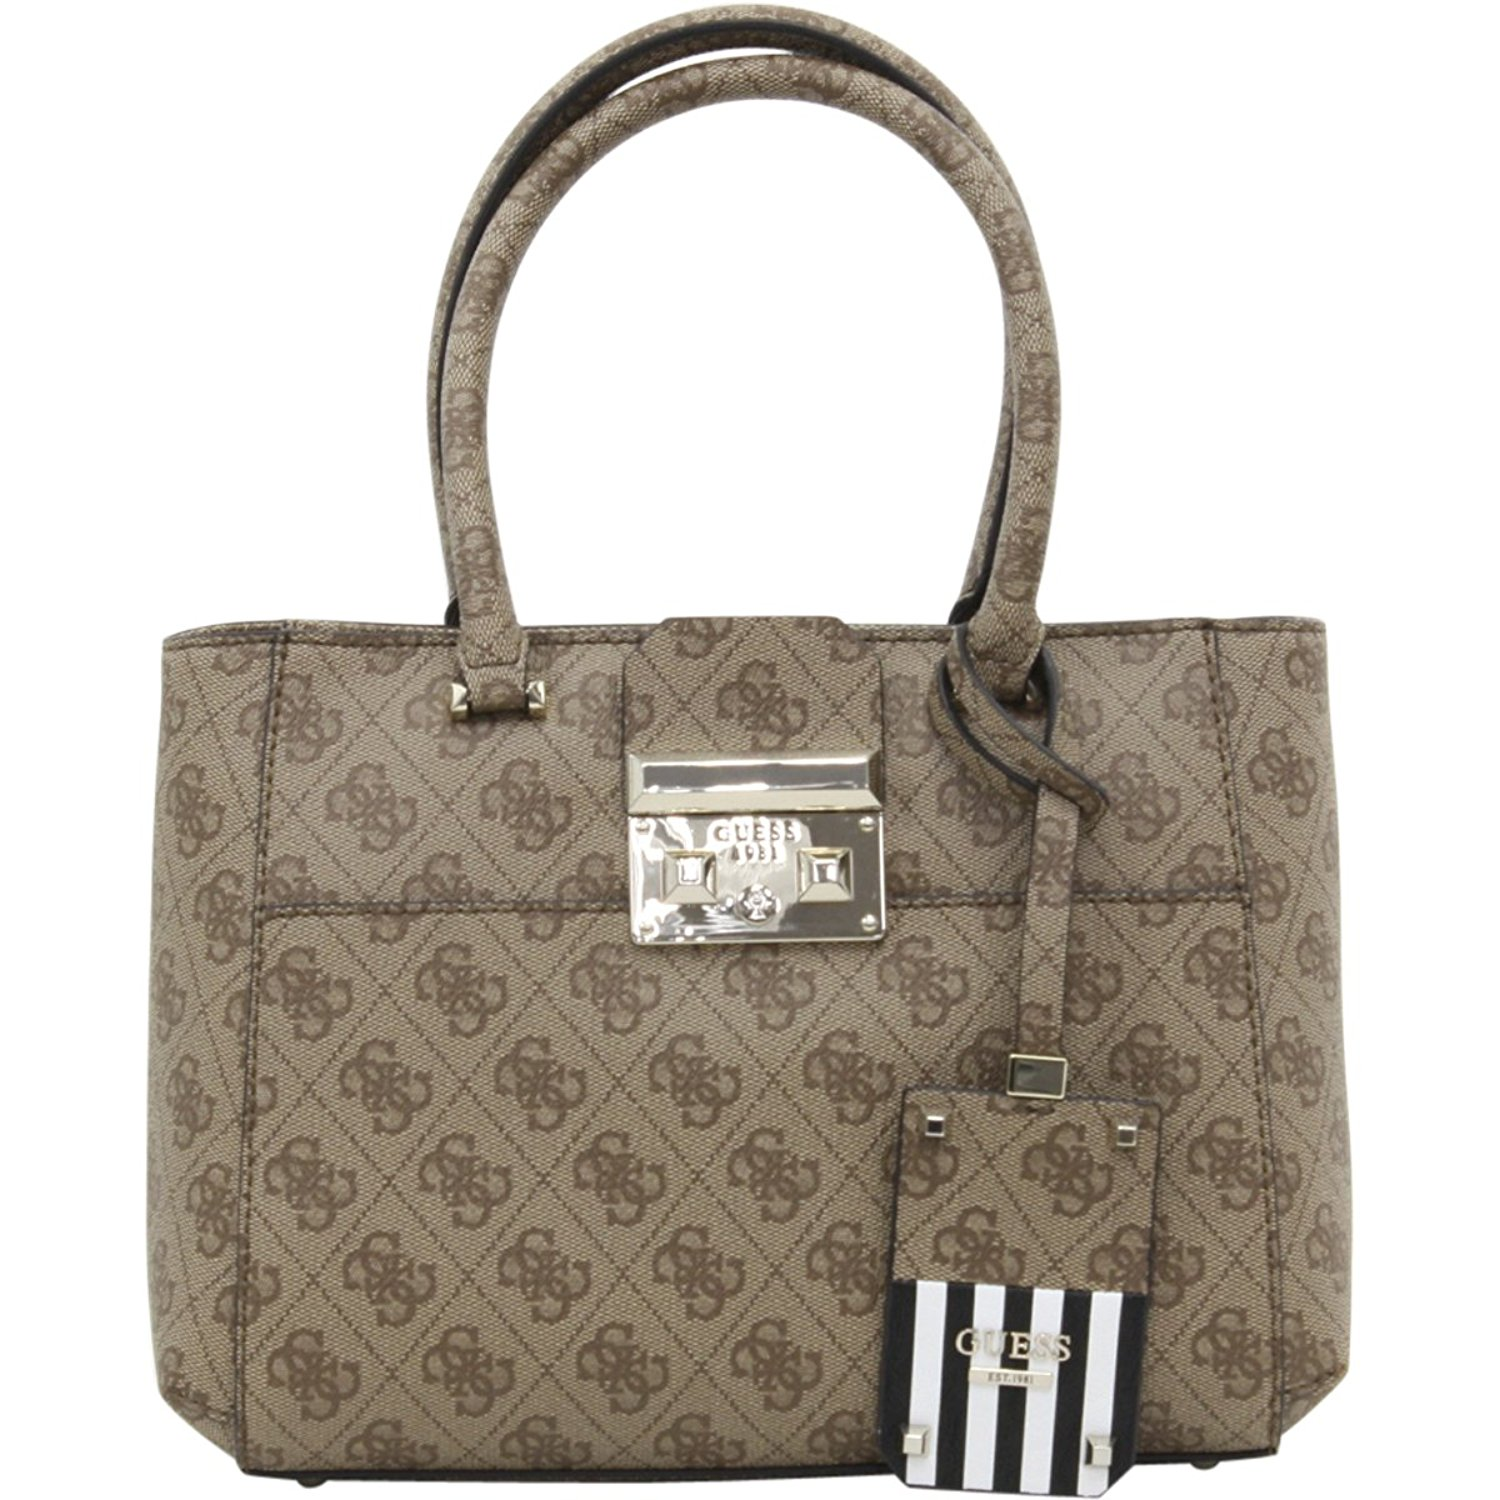 655c45cf10 Get Quotations · Guess Women s Martine Small Top Handle Framed Satchel  Handbag